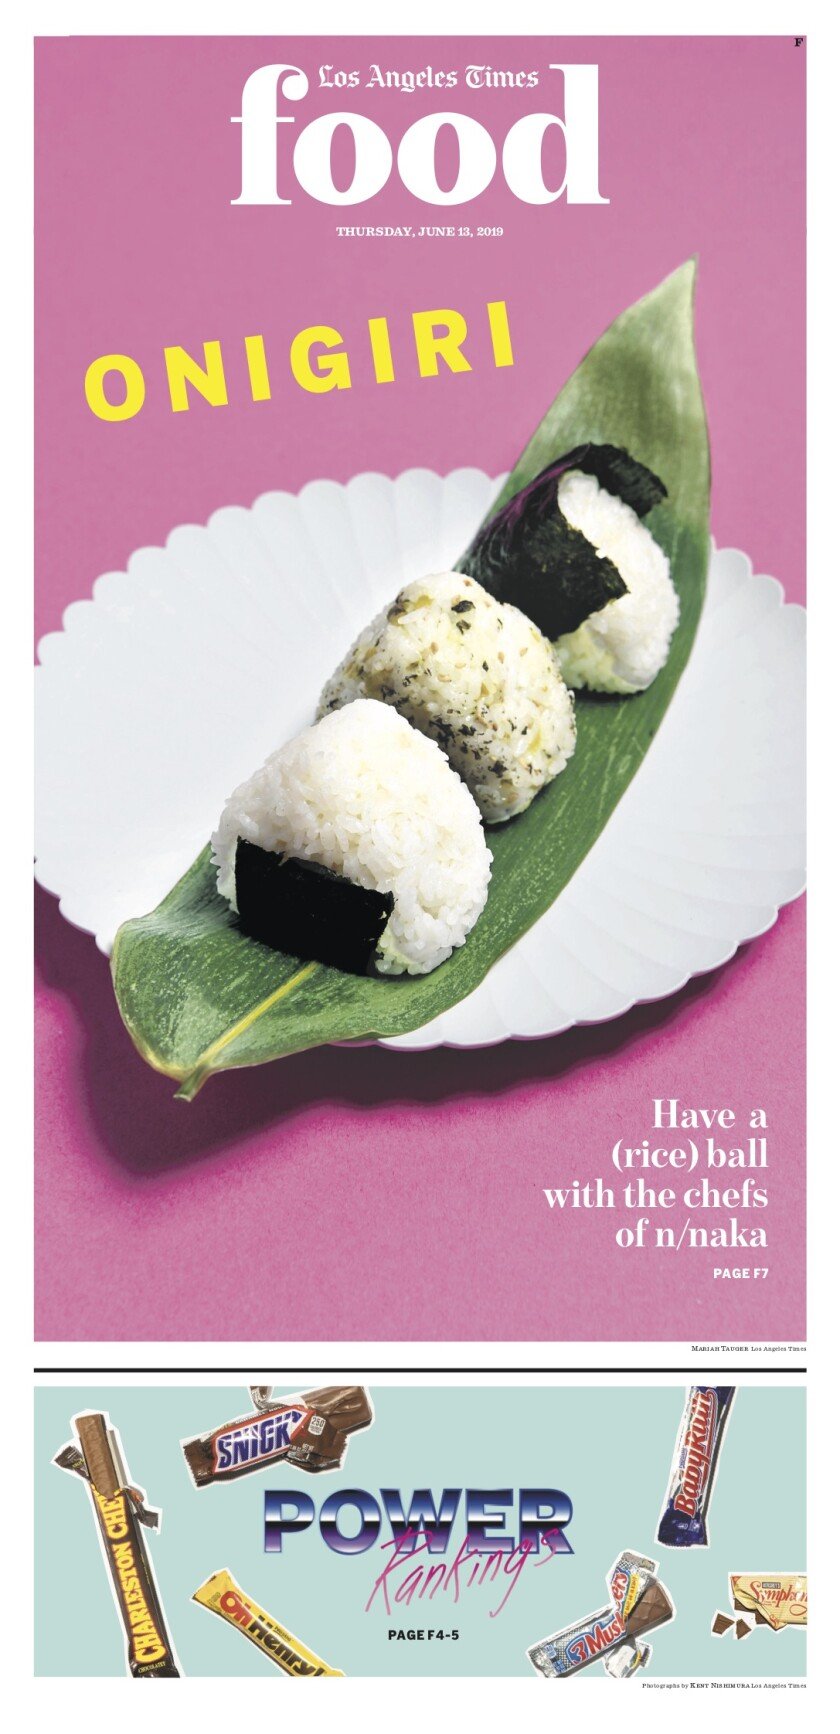 Los Angeles Times Food cover, June 13, 2019